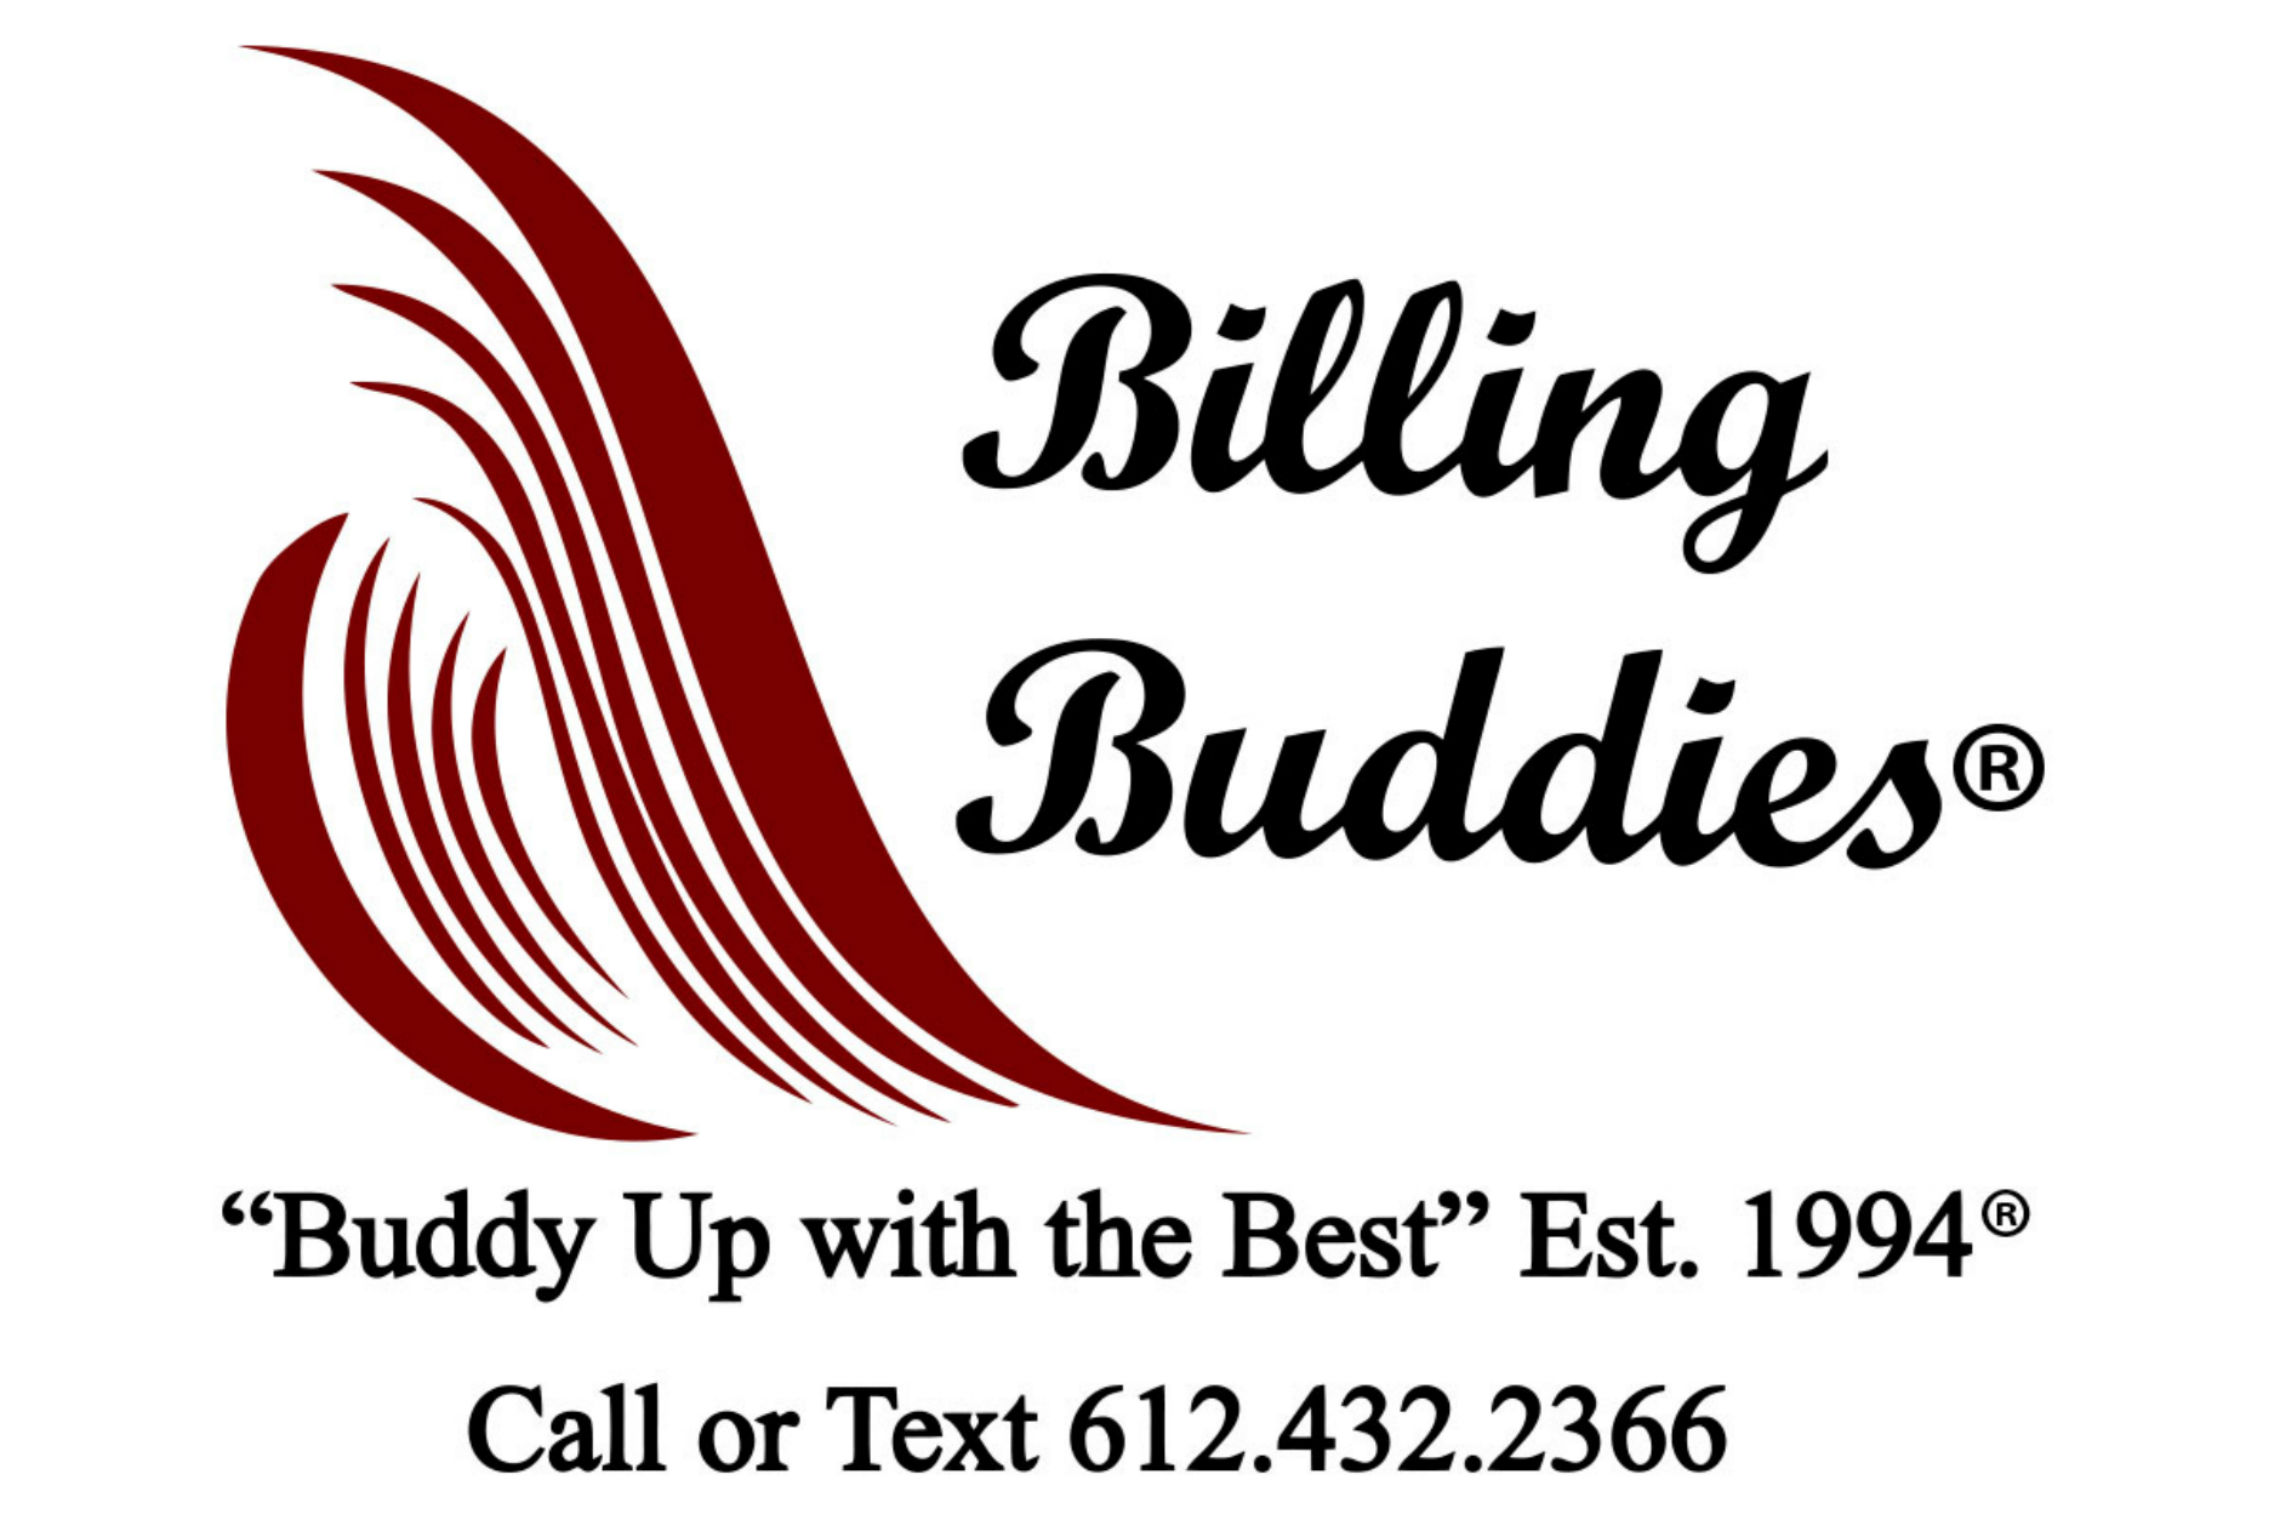 Billing Buddies ®